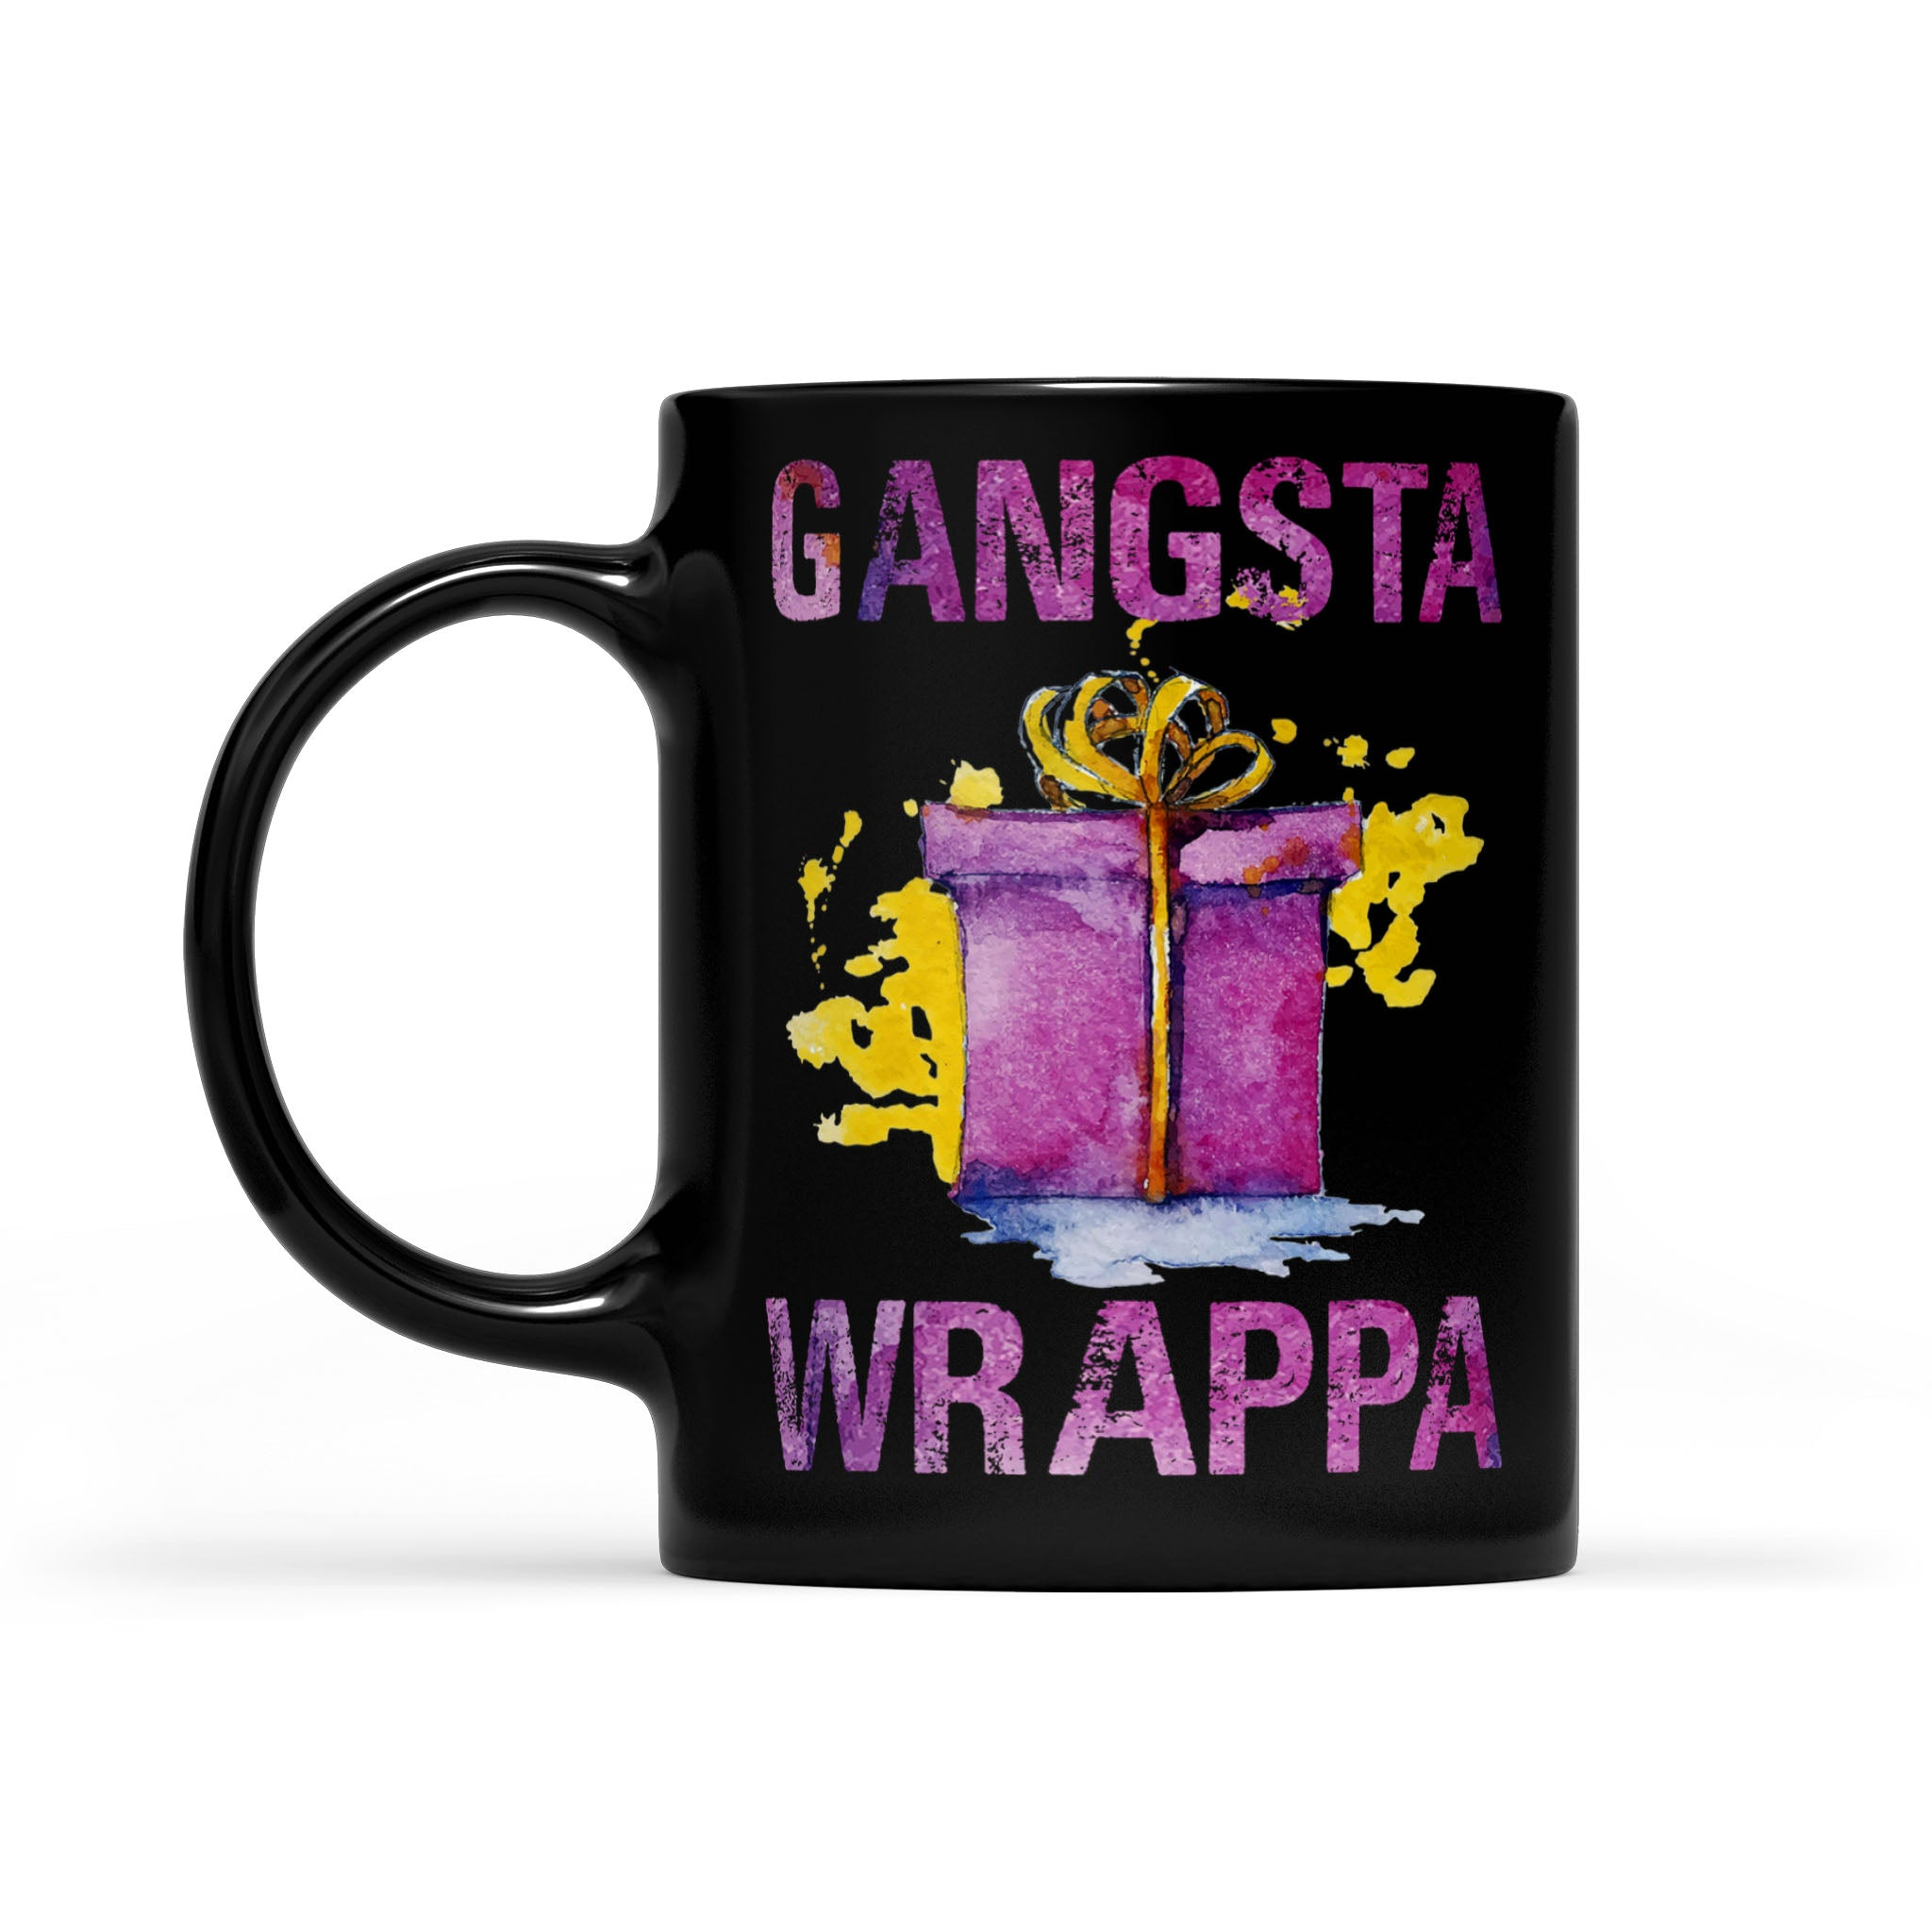 Funny Christmas Outfit - Gangsta Wrappa Holiday Gift  Black Mug Gift For Christmas